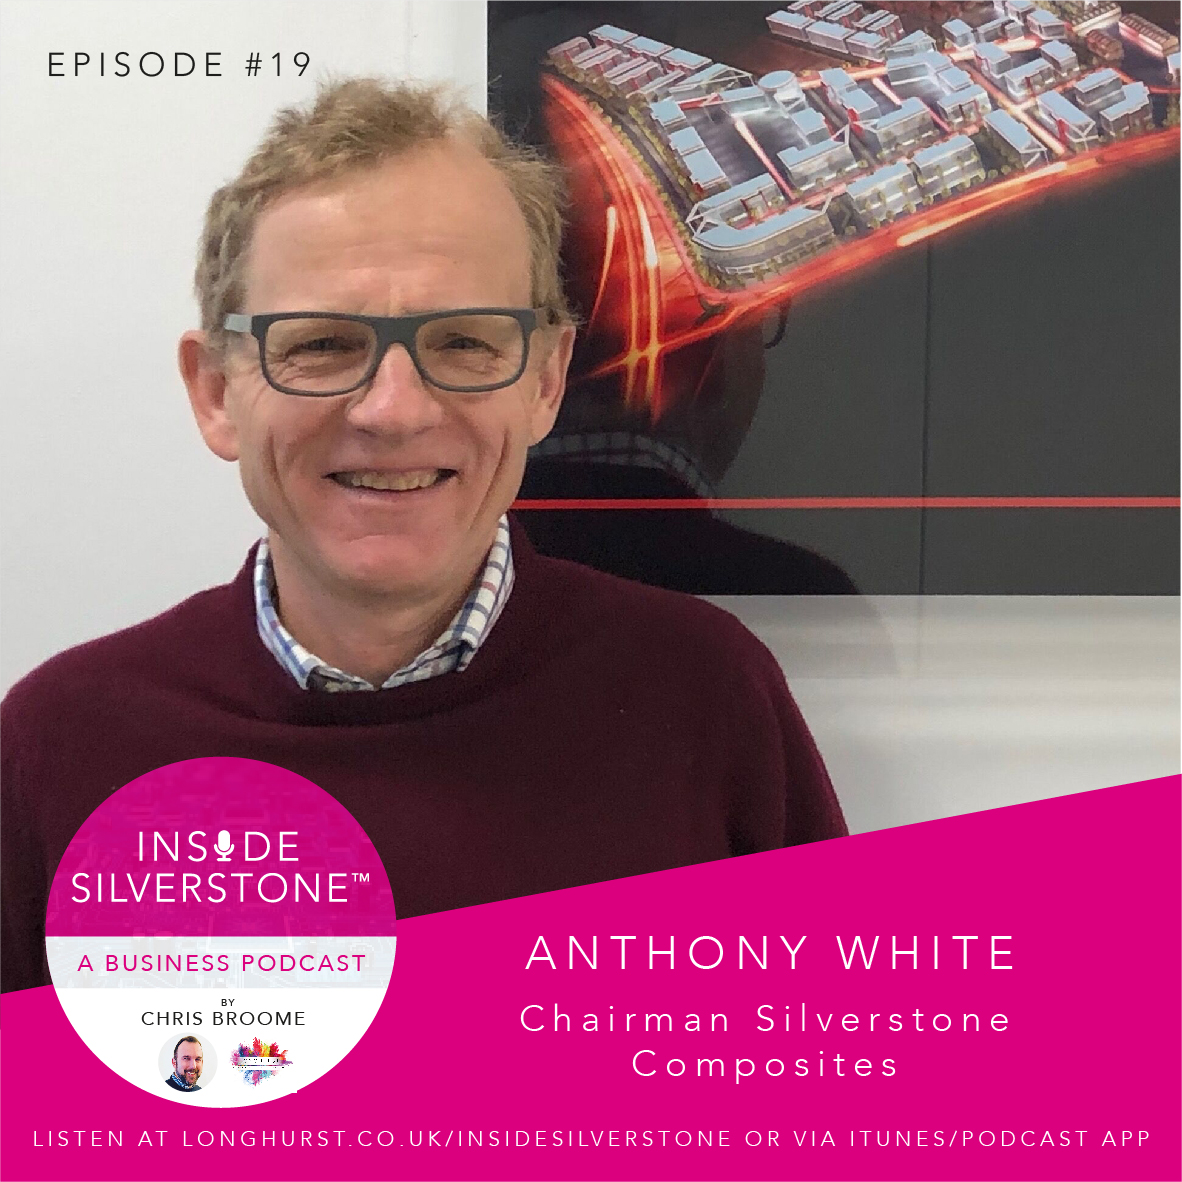 Anthony White - Chairman Silverstone Composites